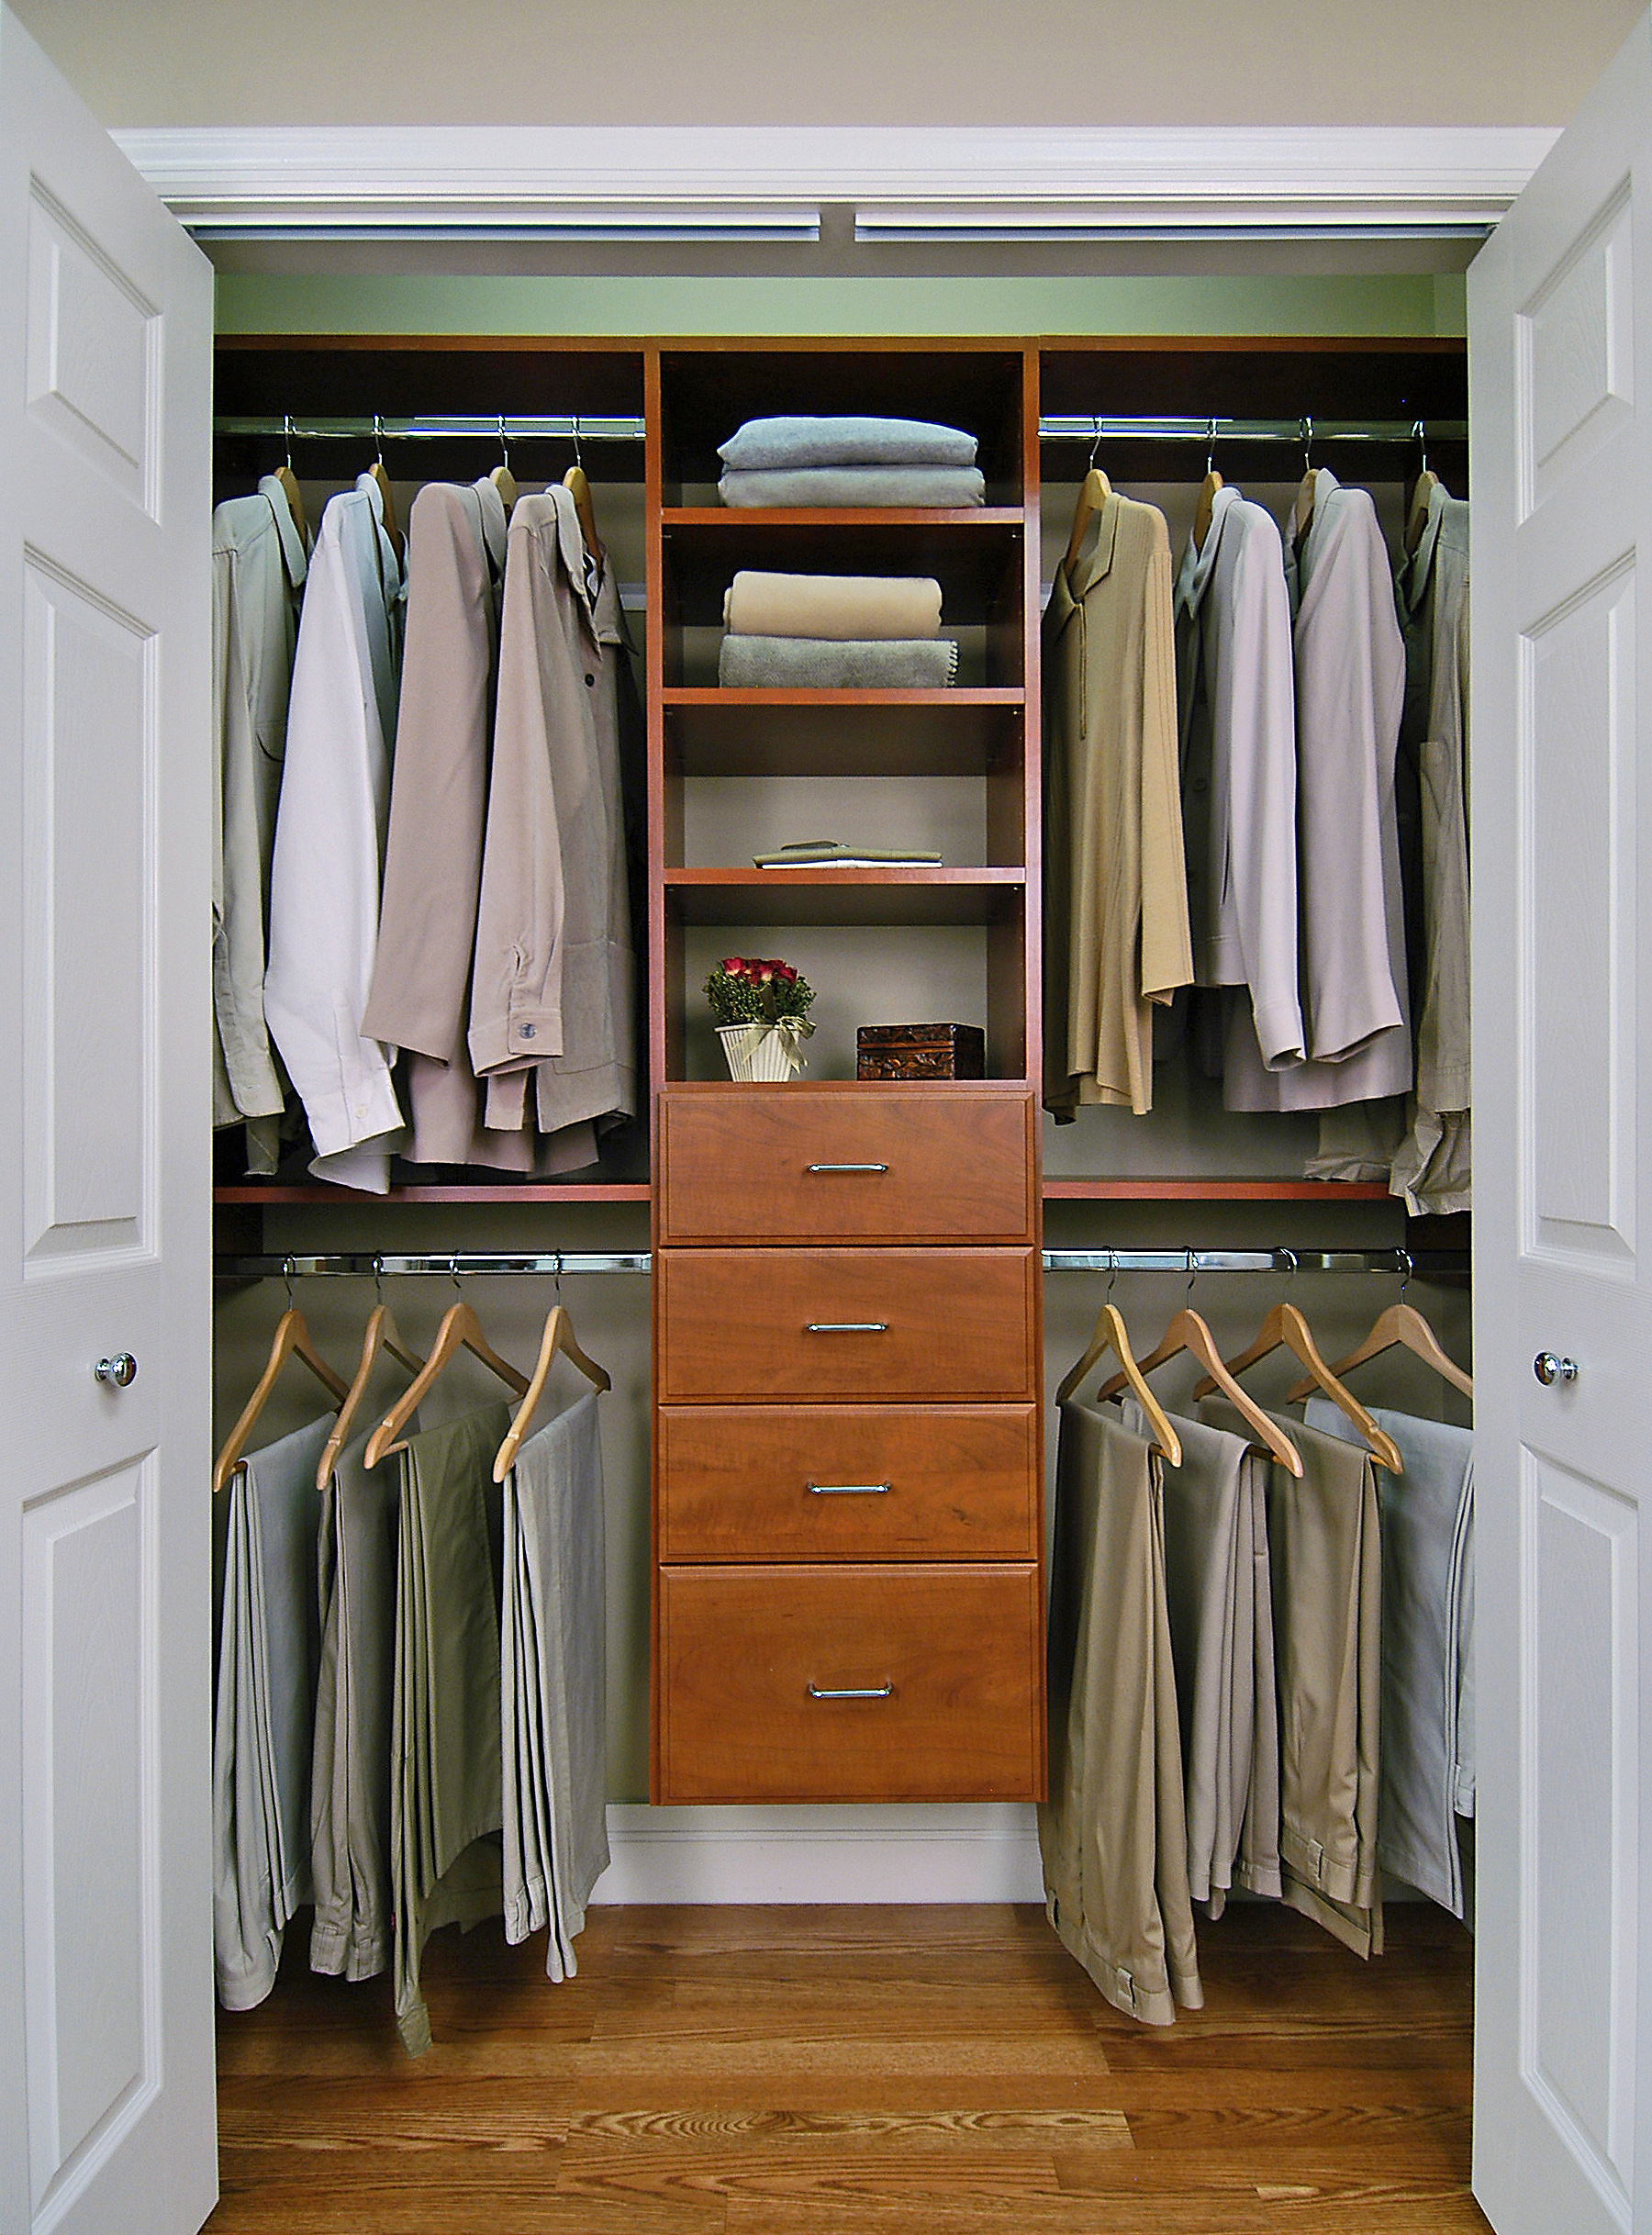 cherry reach in closet features include double hanging and standard